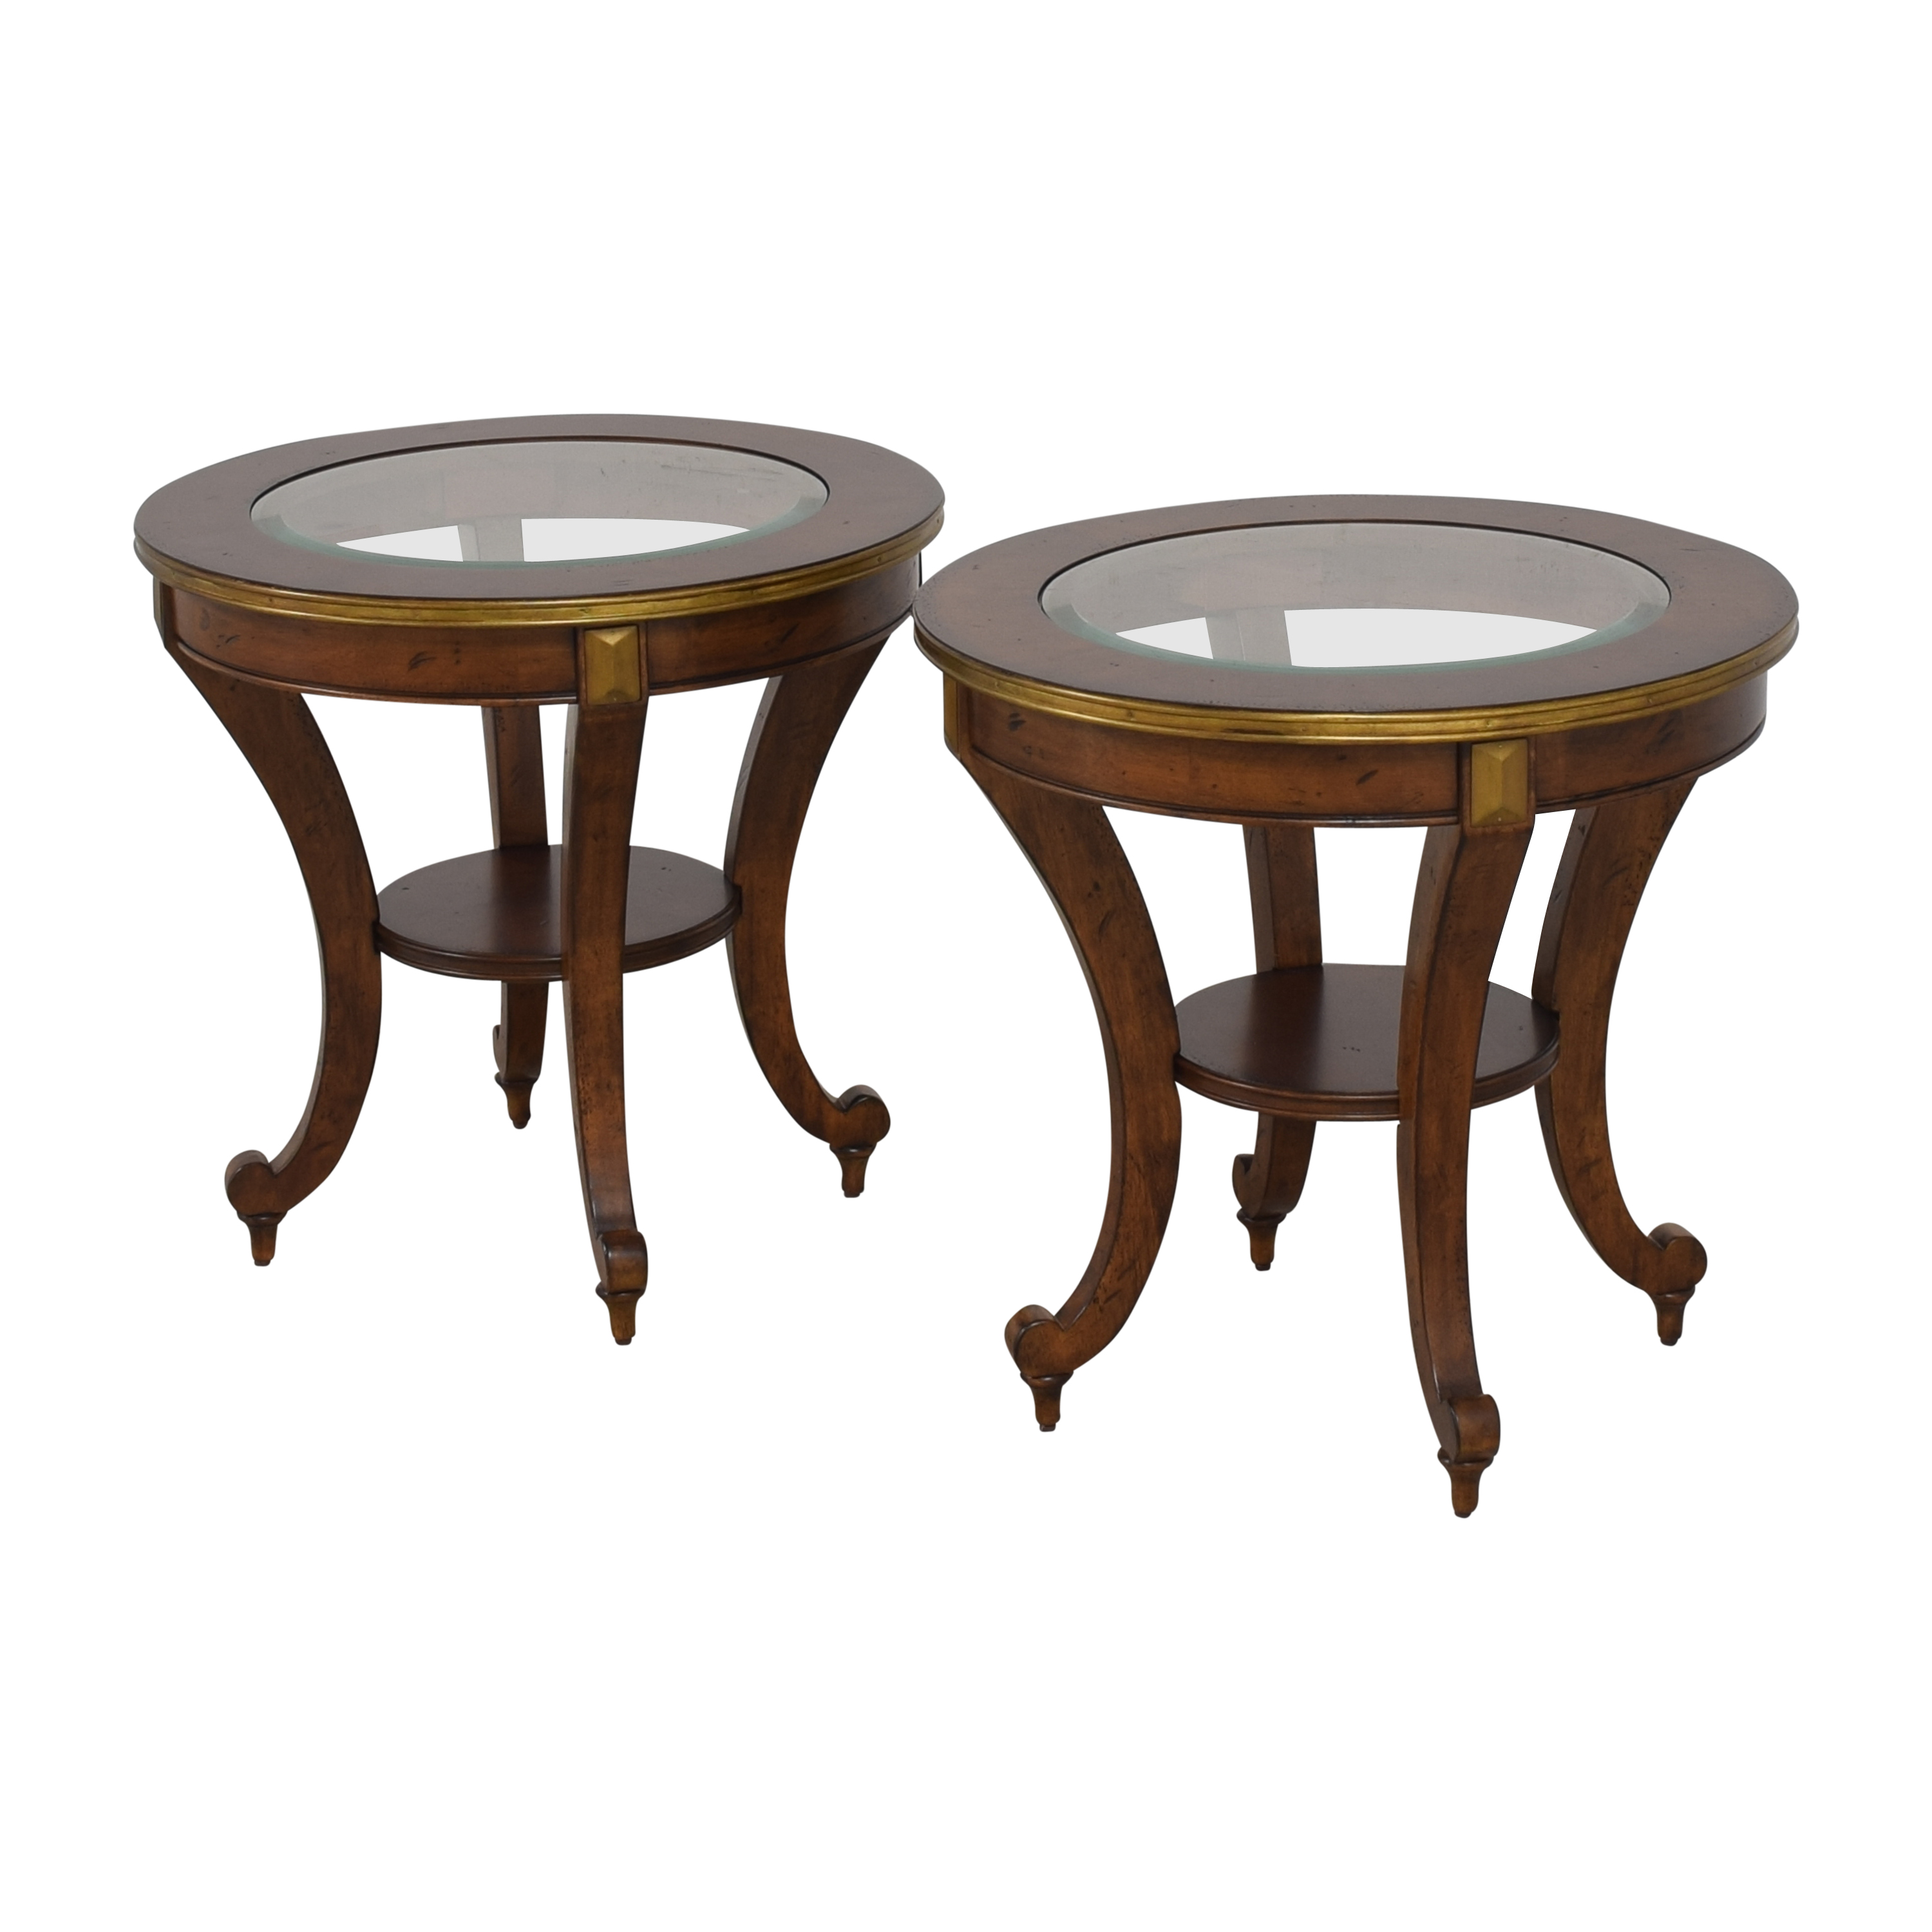 Havertys Havertys Round End Tables brown and gold